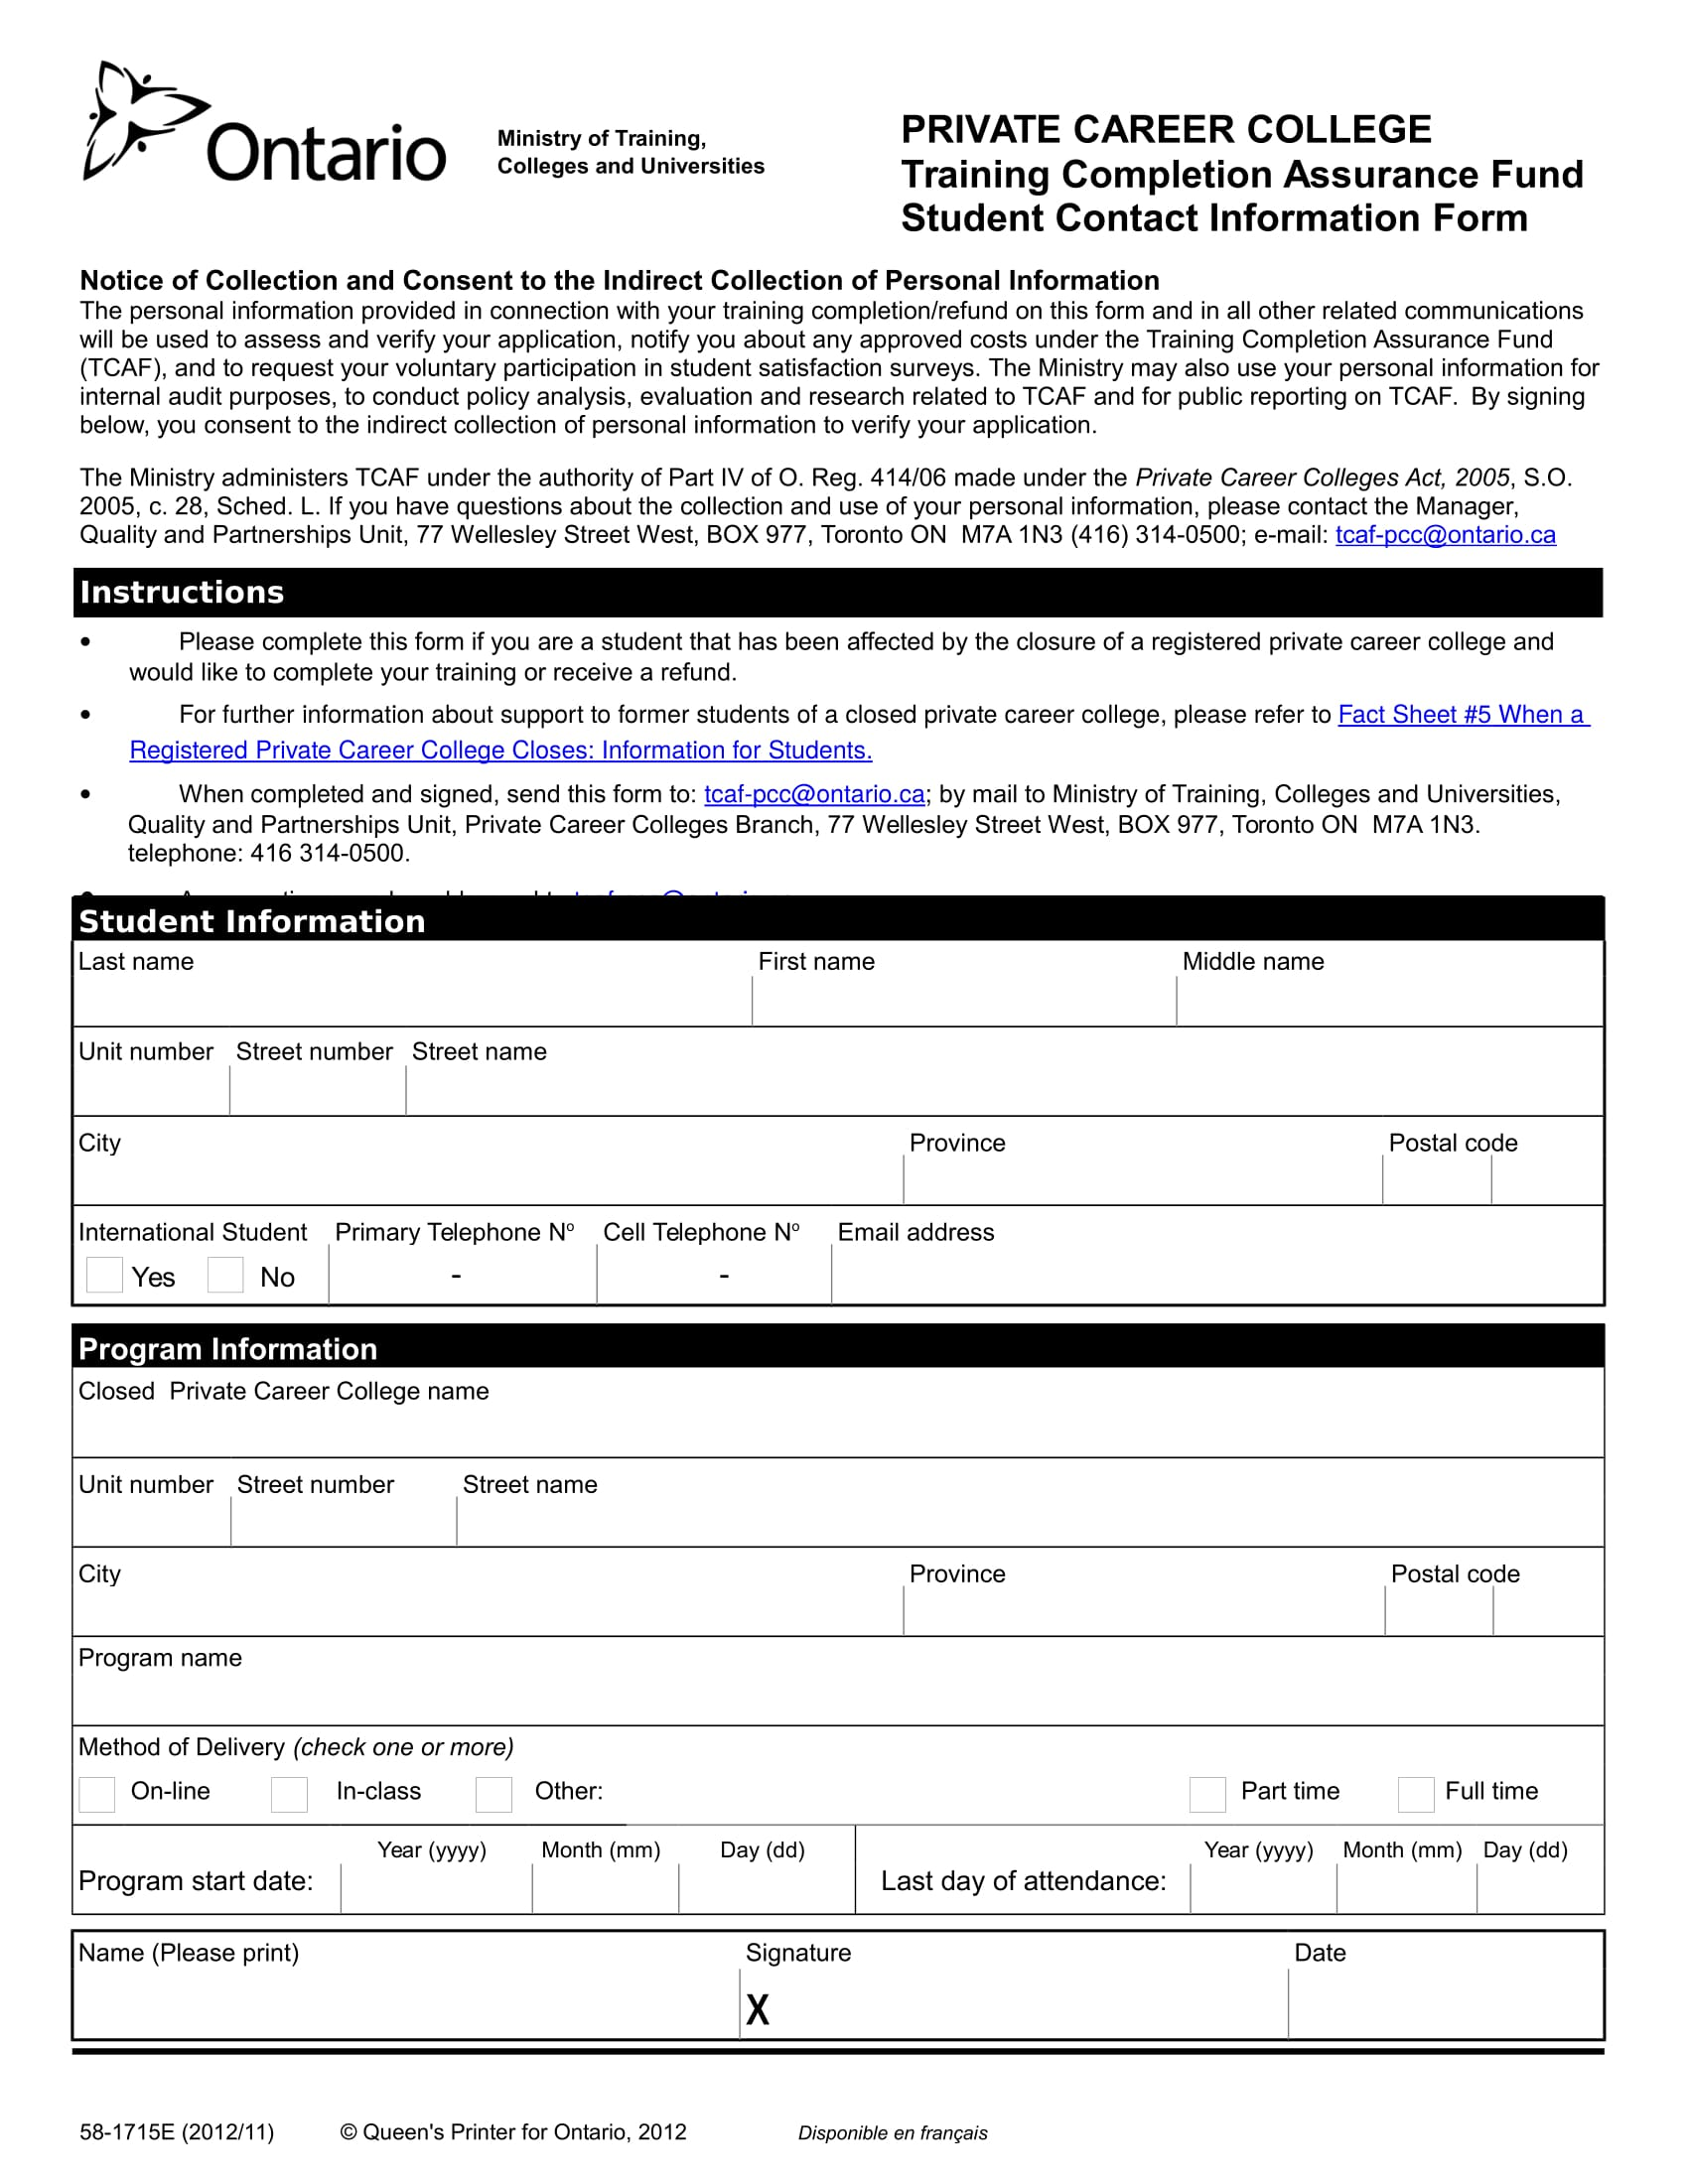 student contact information form 1